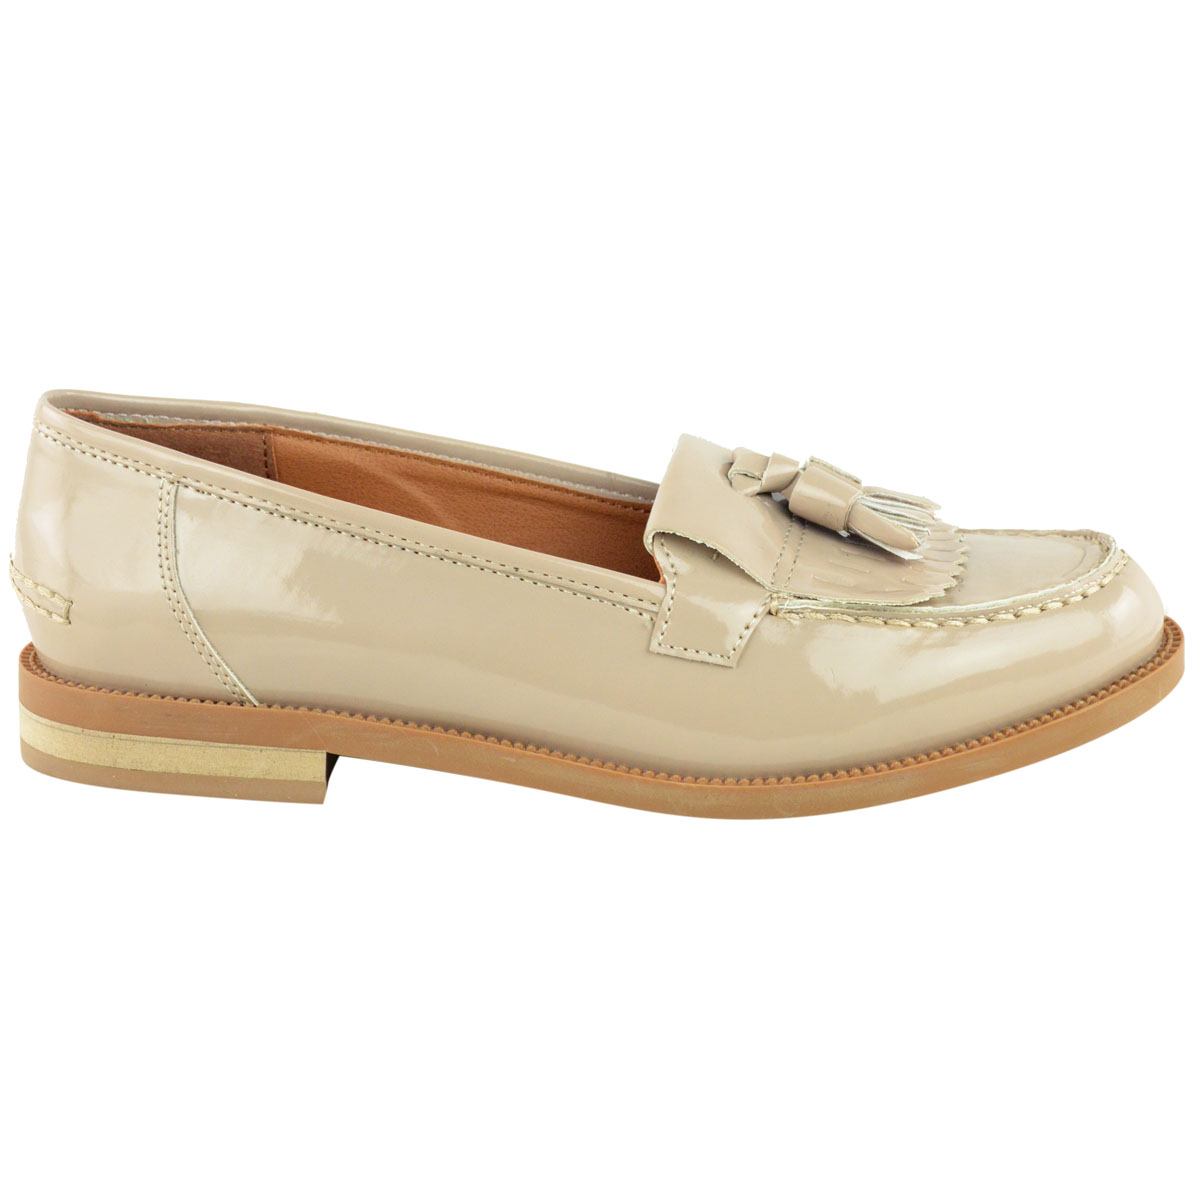 Womens-Ladies-Loafers-Brogues-Pumps-Casual-School-Office-Comfy-Work-Flats-Size thumbnail 23